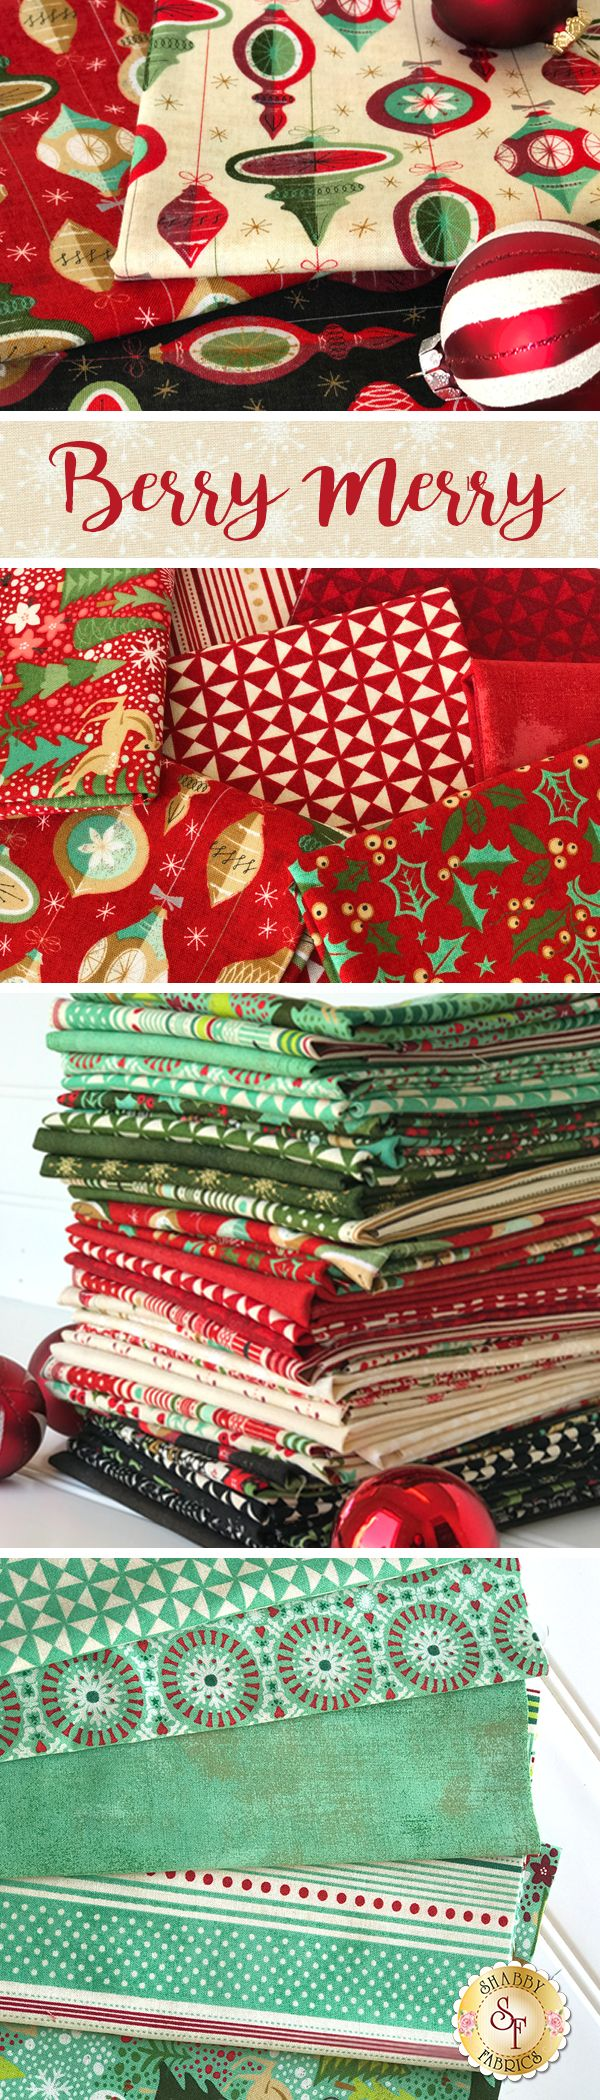 Berry Merry is a festive Holiday collection by BasicGrey for Moda Fabrics available at Shabby Fabrics!